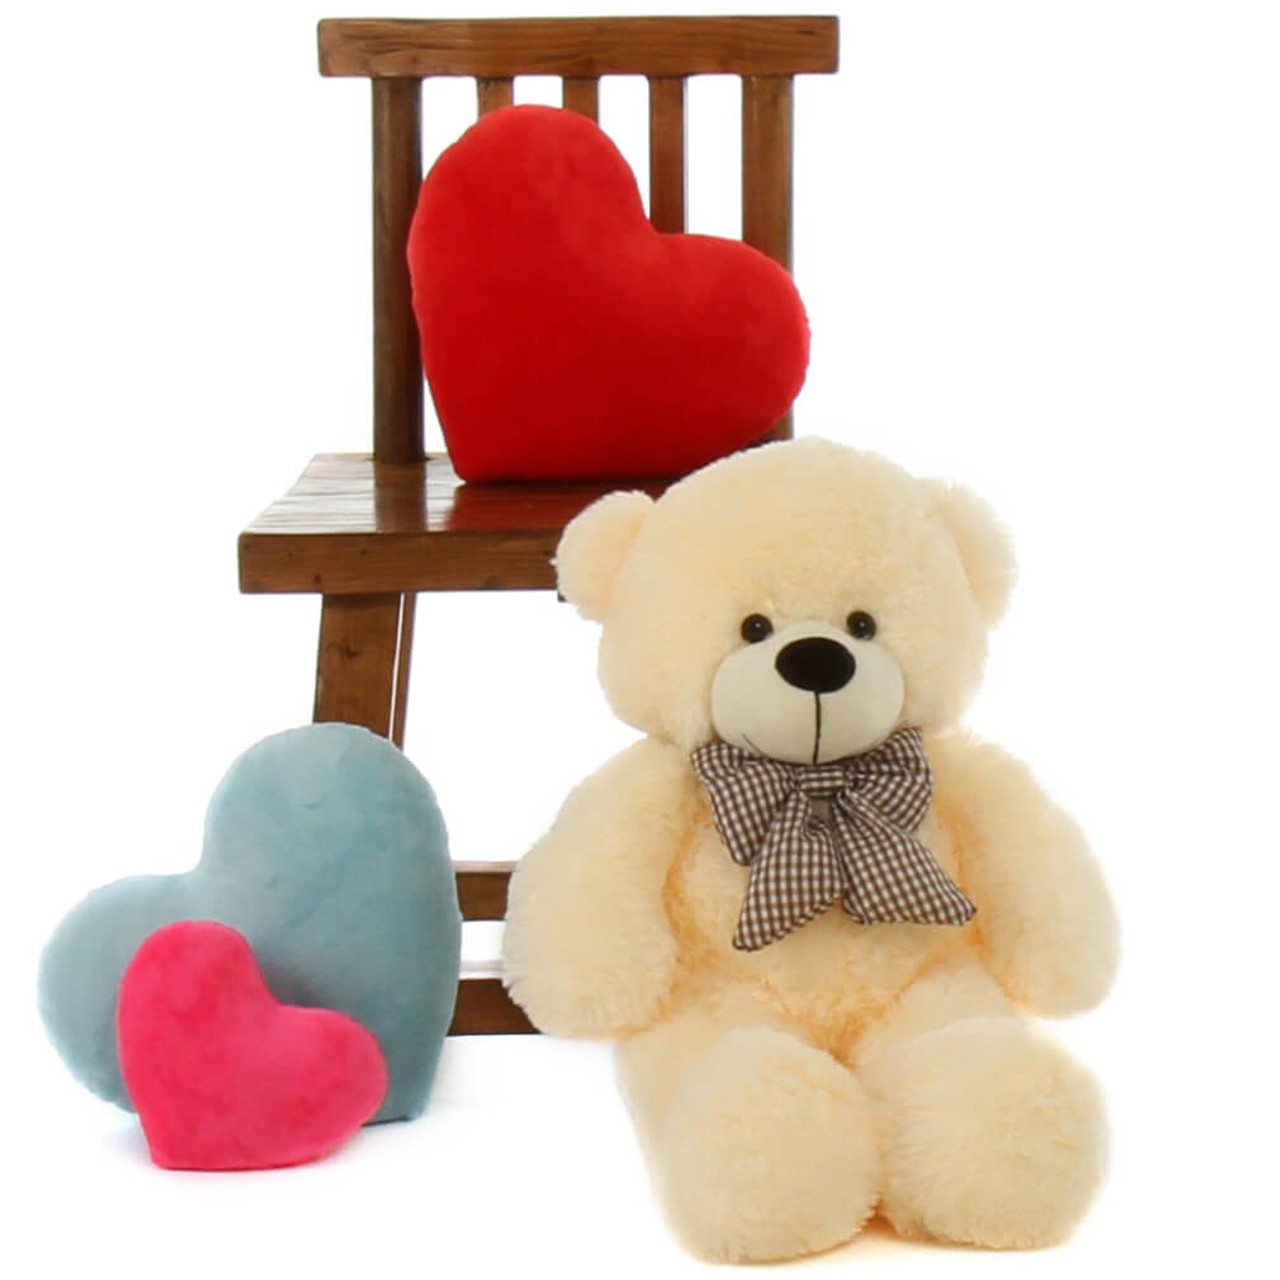 Creamy Vanilla 24in Teddy Bear Cozy Cuddles